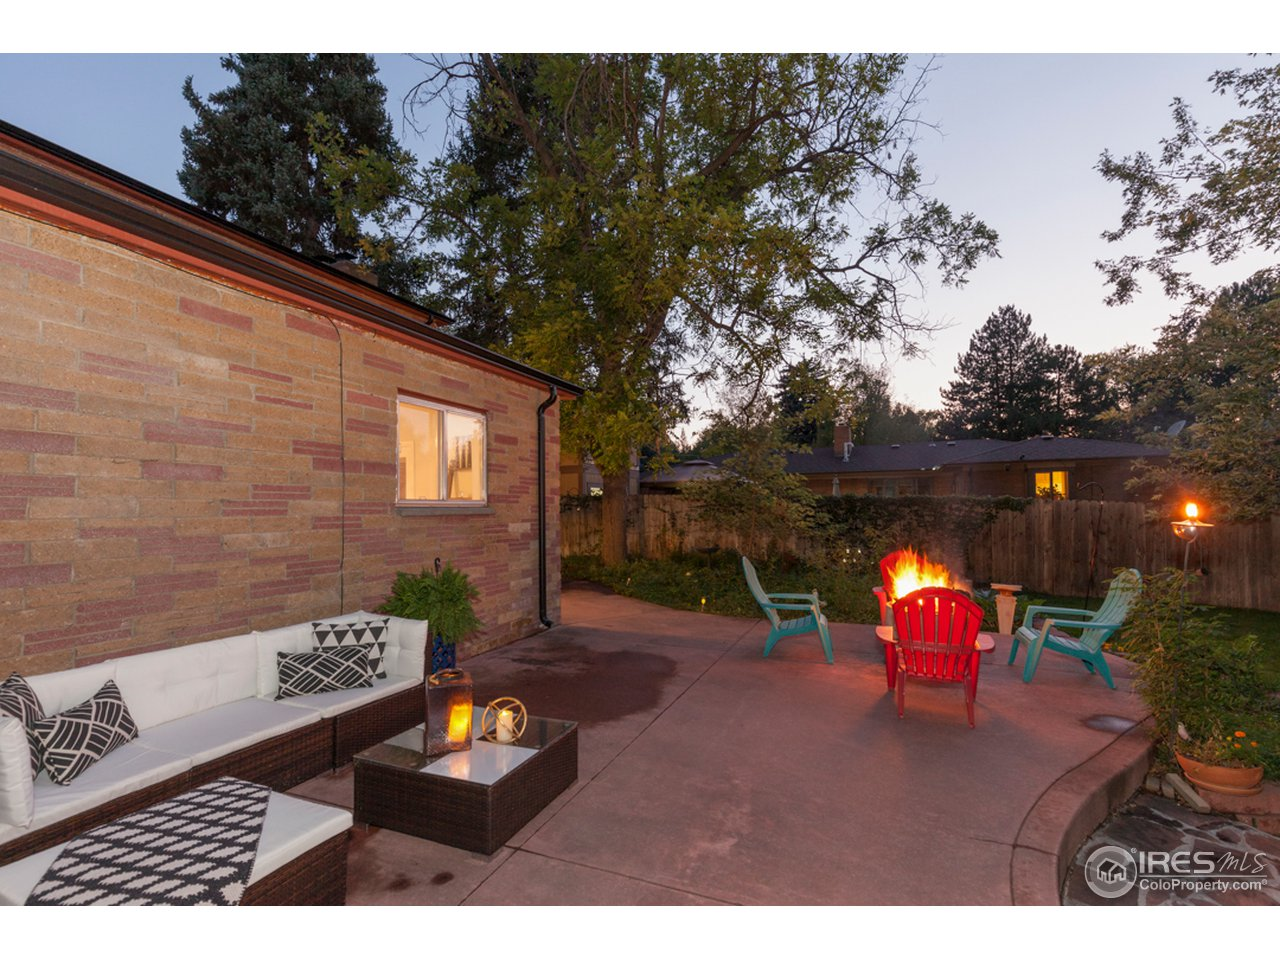 1717 Montview Blvd Greeley 80631 Greeley Mls 866528 Pink Realty